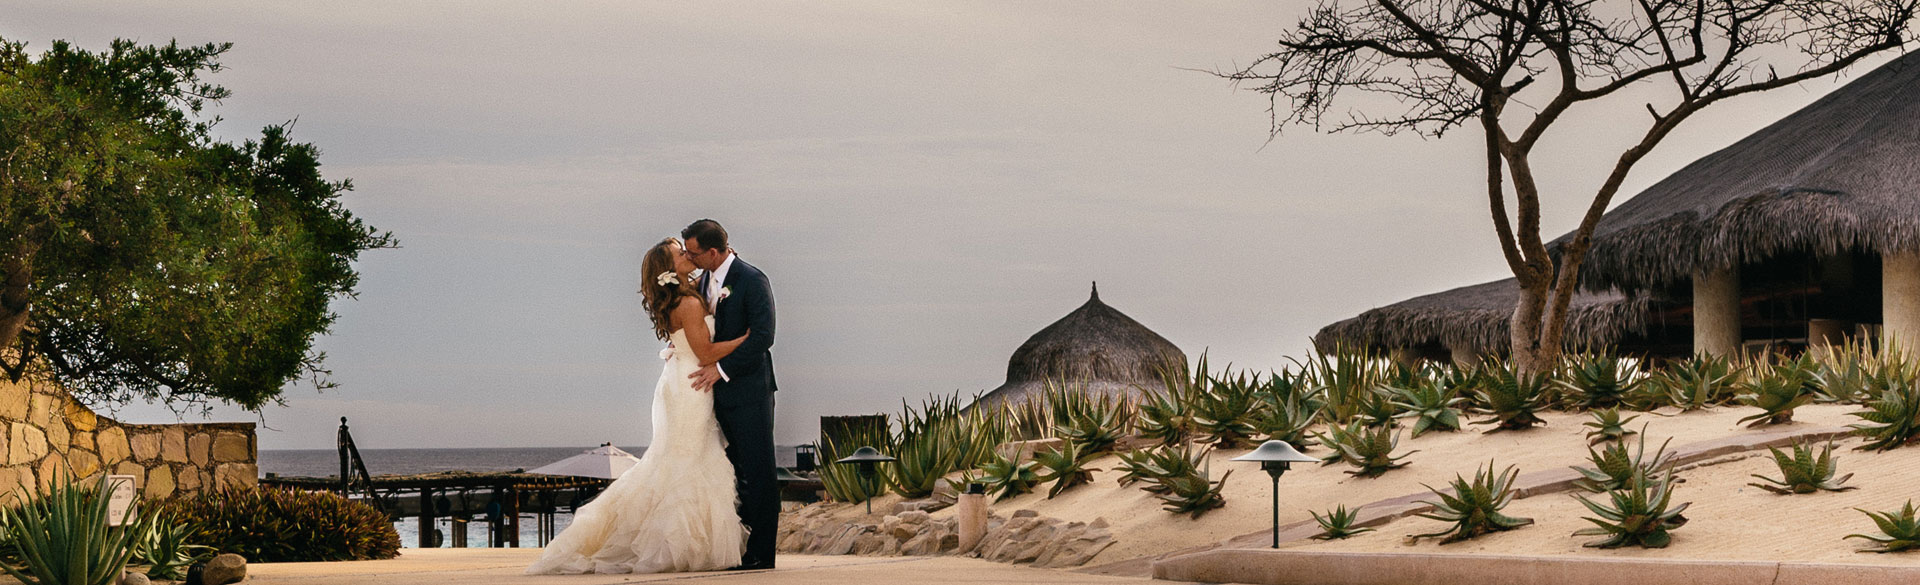 Wedding couple sharing a kiss on a beach path in Mexico